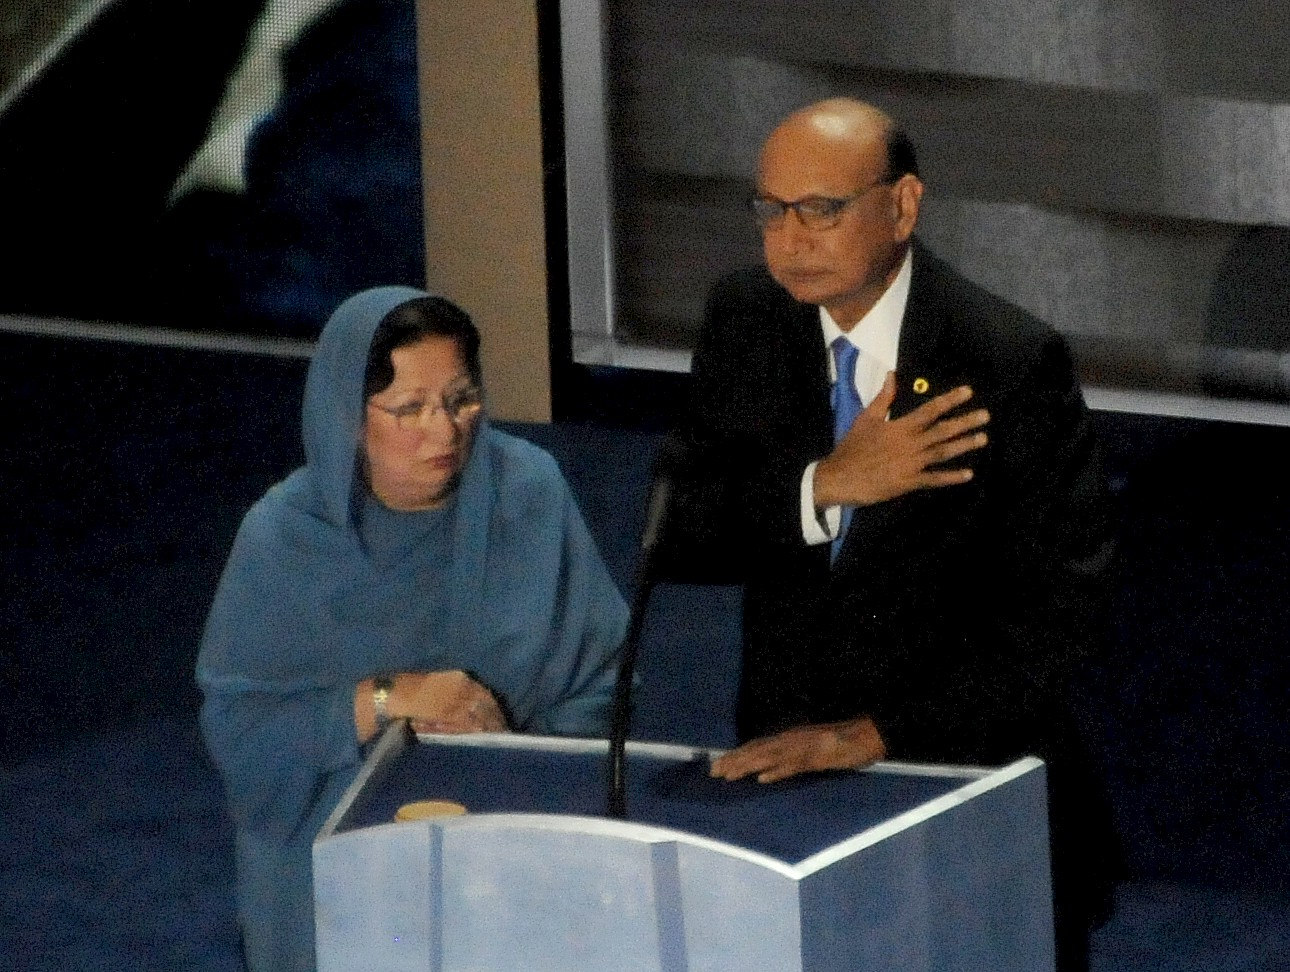 Khizr M. Khan and his wife, Ghazala, speak emotionally of the ultimate sacrifice of their son, Capt. Humayun Khan, at the Democratic National Convention in Philadelphia, July 28, 2016, and pointedly say to Donald Trump, 'You have sacrificed nothing and no one.' © 2016 Karen Rubin/news-photos-features.com